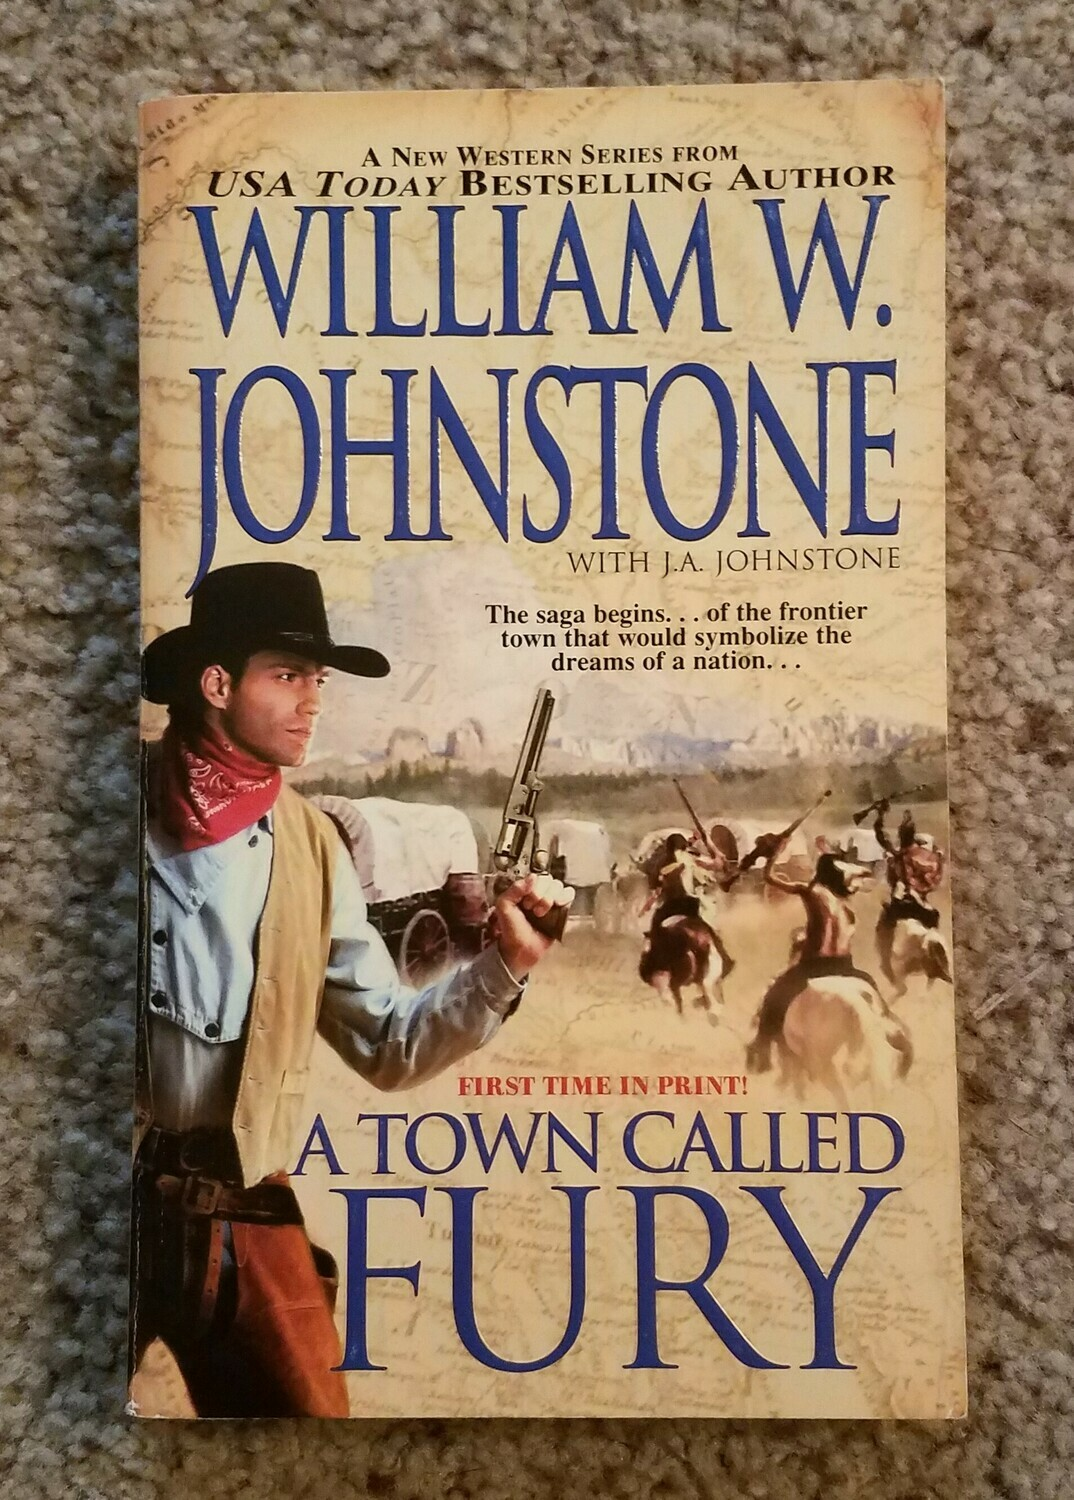 A Town Called Fury by William W. Johnstone with J.A. Johnstone